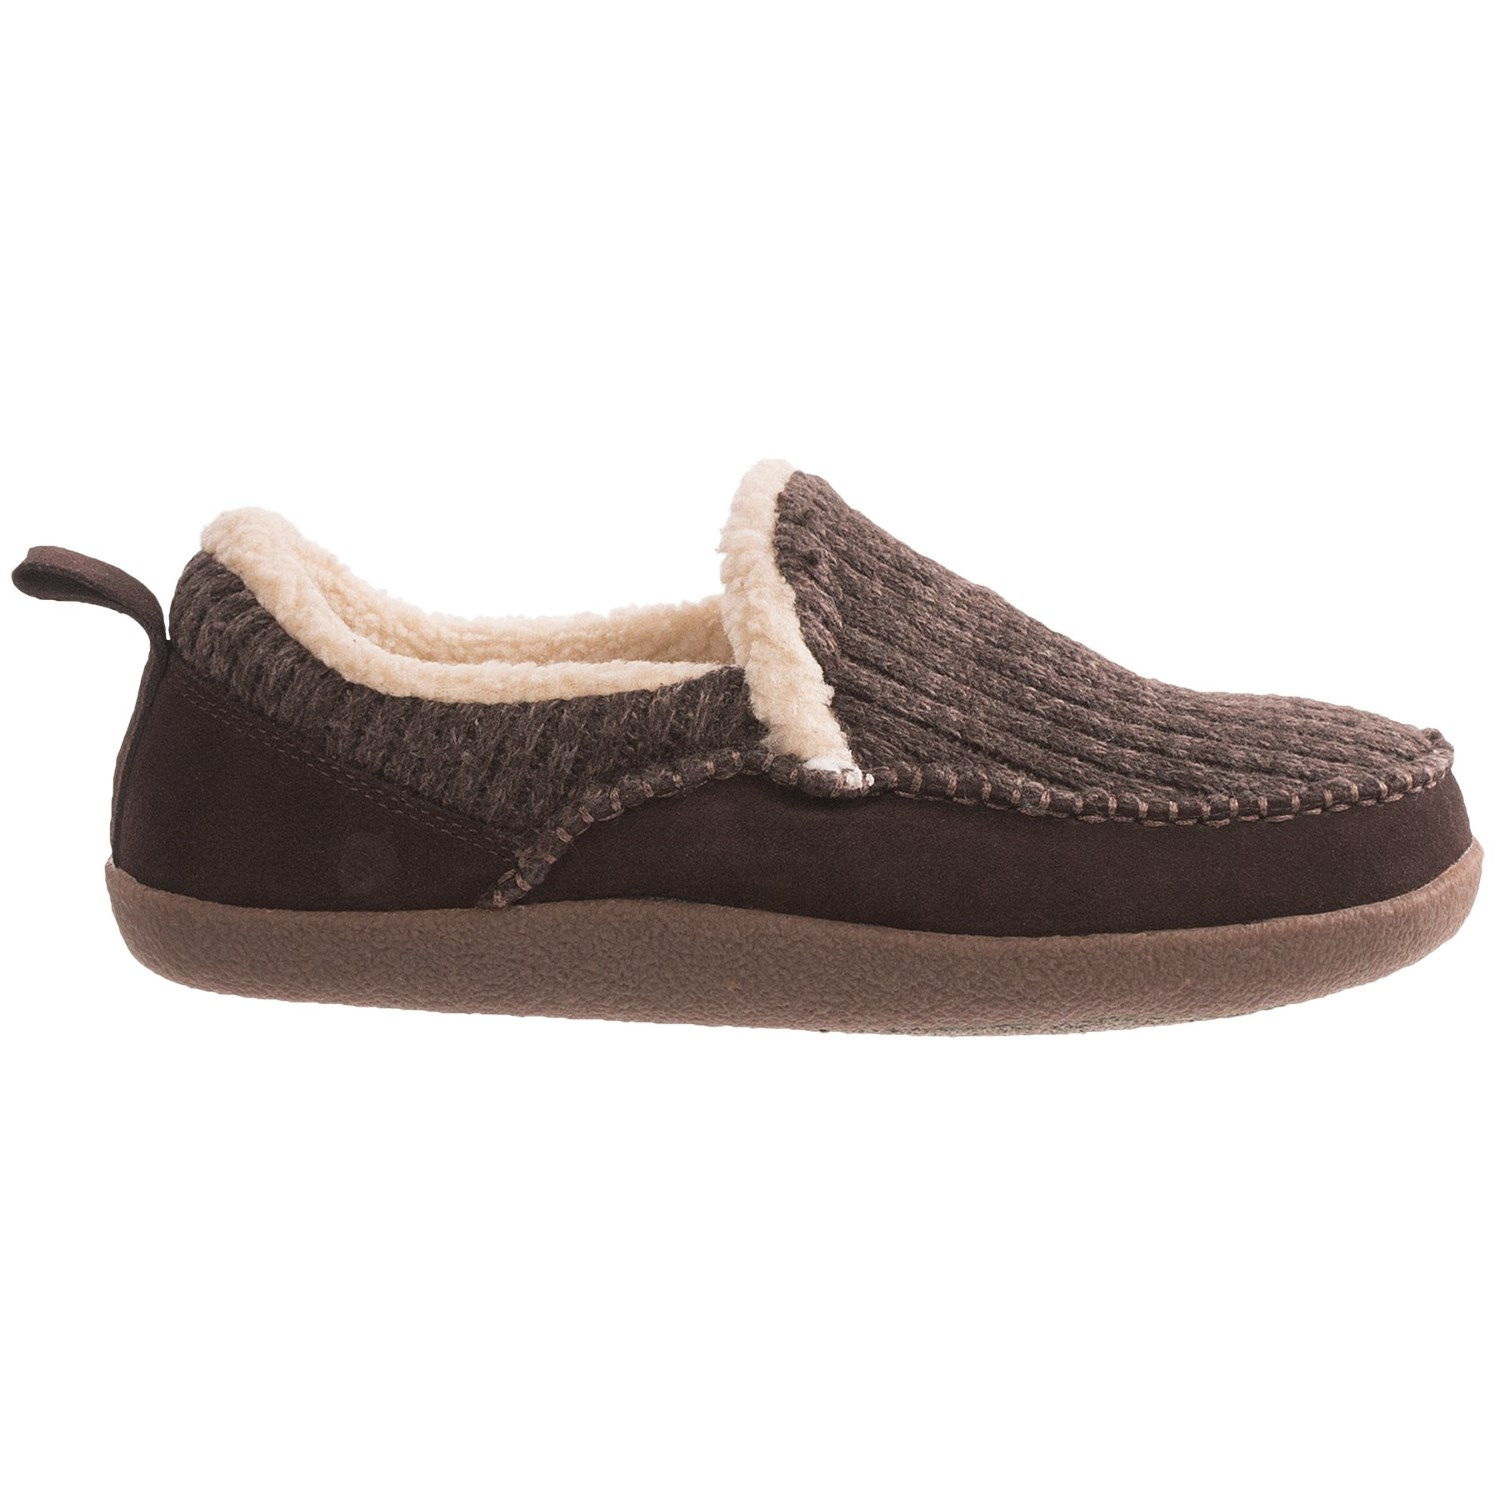 Acorn Slippers Clearance 28 Images Acorn Discontinued Slippers Free Shipping Acorn Sport